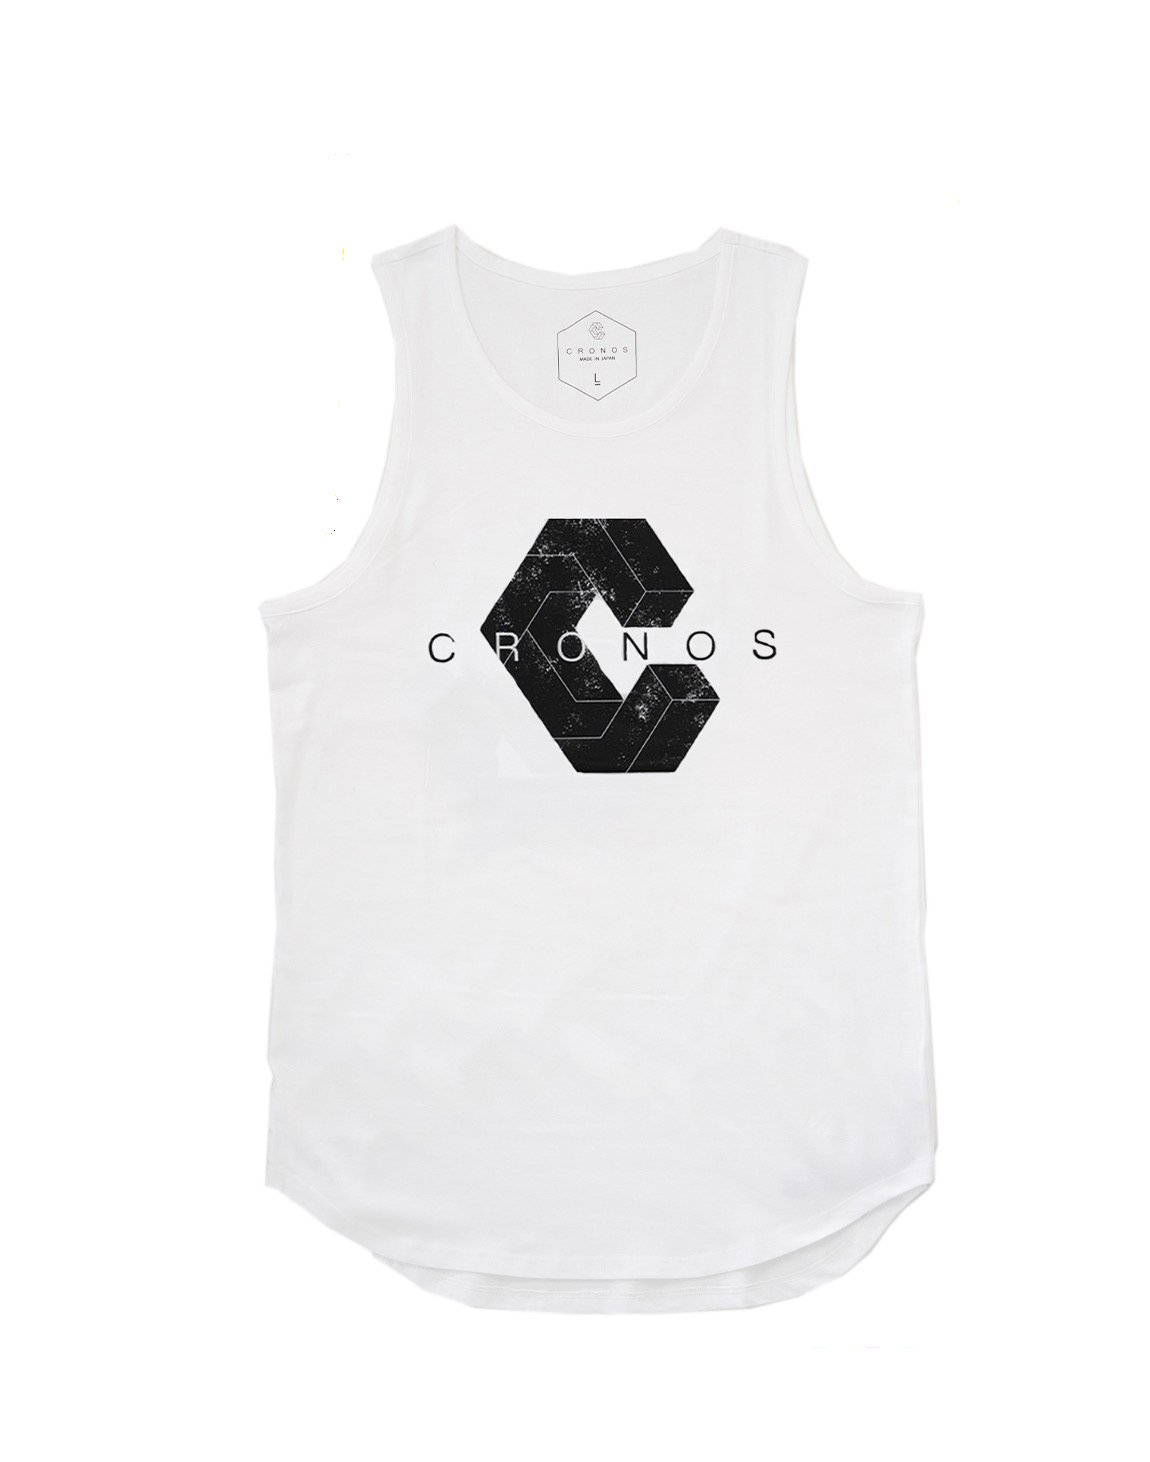 <img class='new_mark_img1' src='https://img.shop-pro.jp/img/new/icons1.gif' style='border:none;display:inline;margin:0px;padding:0px;width:auto;' />CRONOS NEW LOGO TANK TOP 【WHITE】